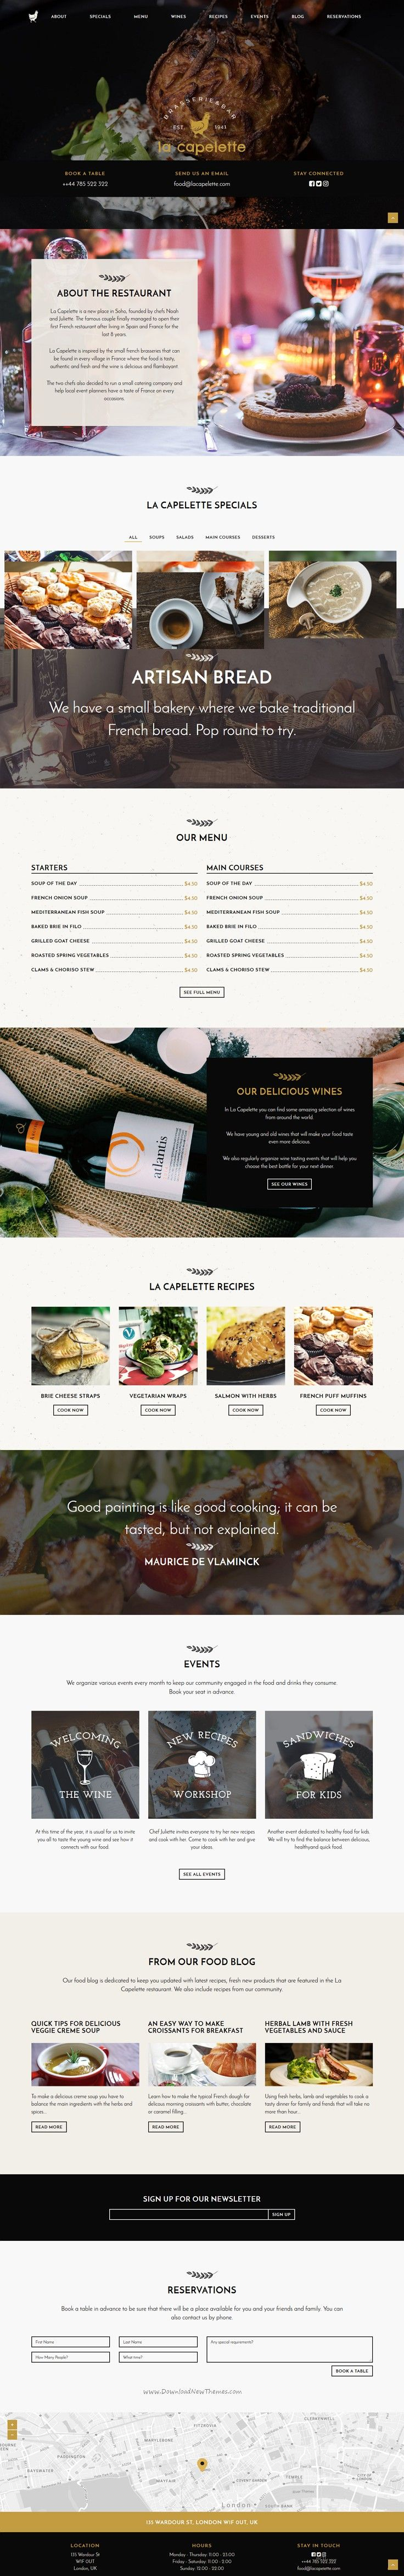 La Capelette is simple yet stylish and unique Bootstrap template